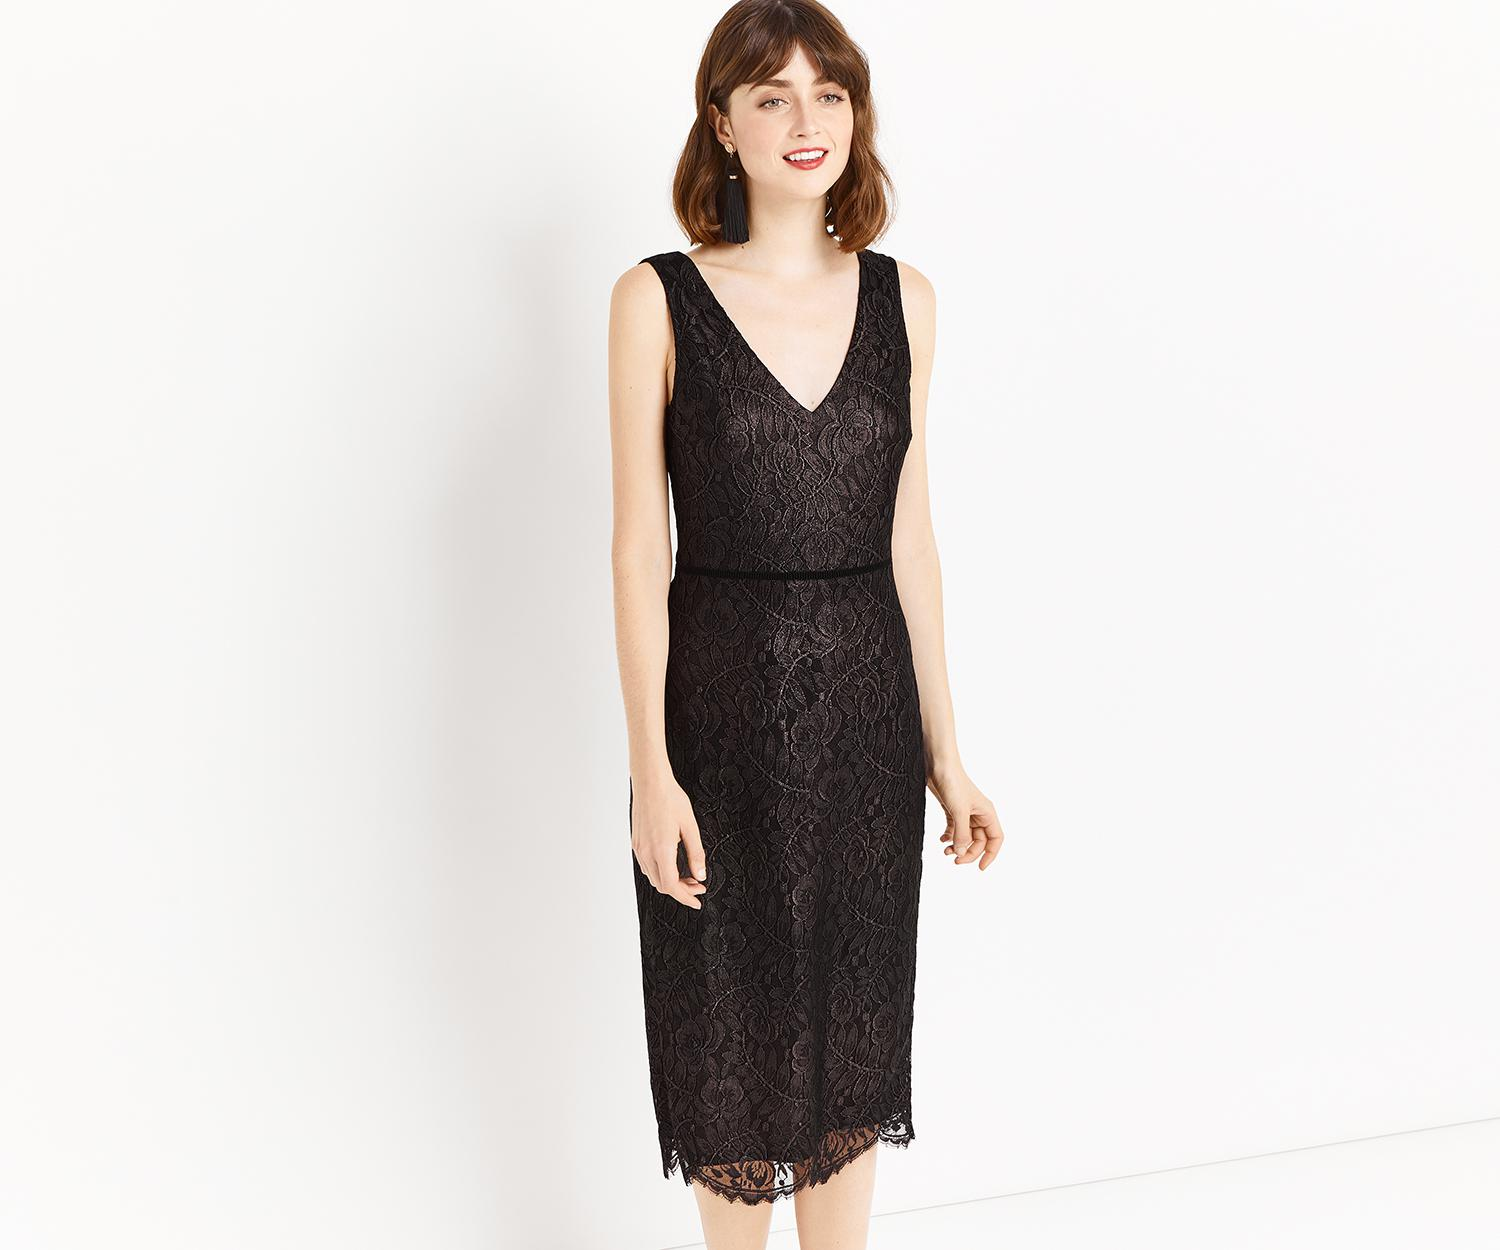 300b417037b3 Gallery. Previously sold at: Oasis · Women's Lace Dresses